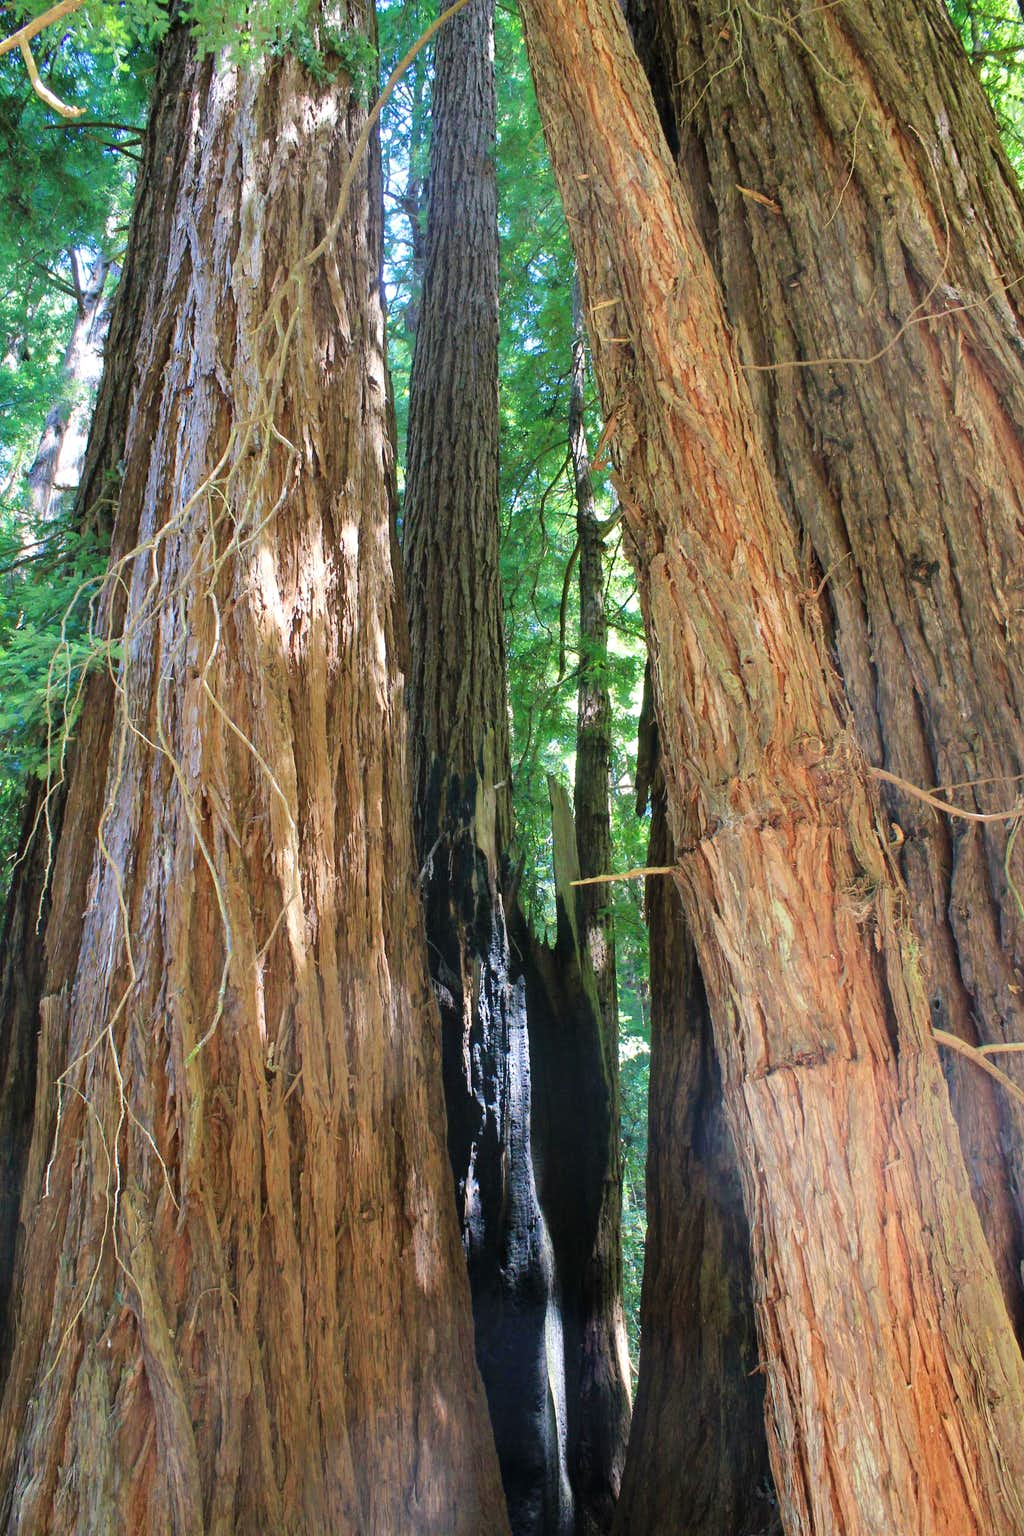 Muir Woods National Monument New Growths from Ancient Redwood